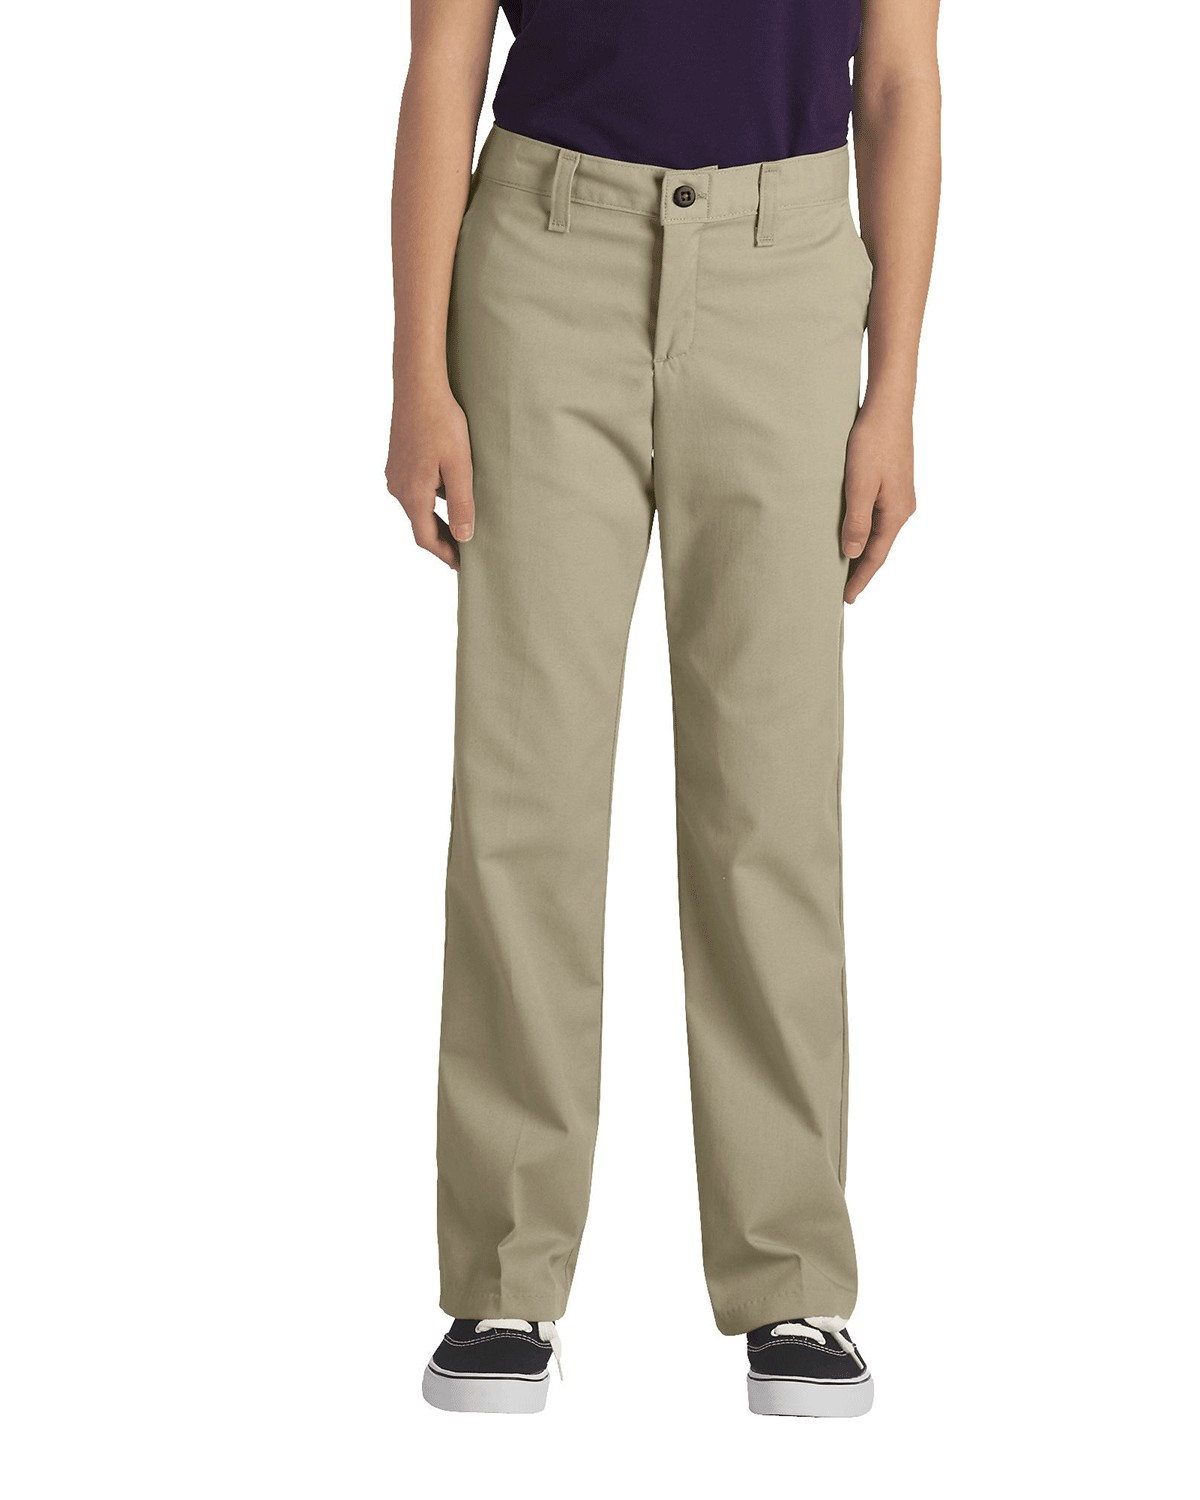 Dickies KP5518 Girls FlexWaist Classic Fit Straight-Leg Twill Stretch Pant - Desert Sand - 20 #%20